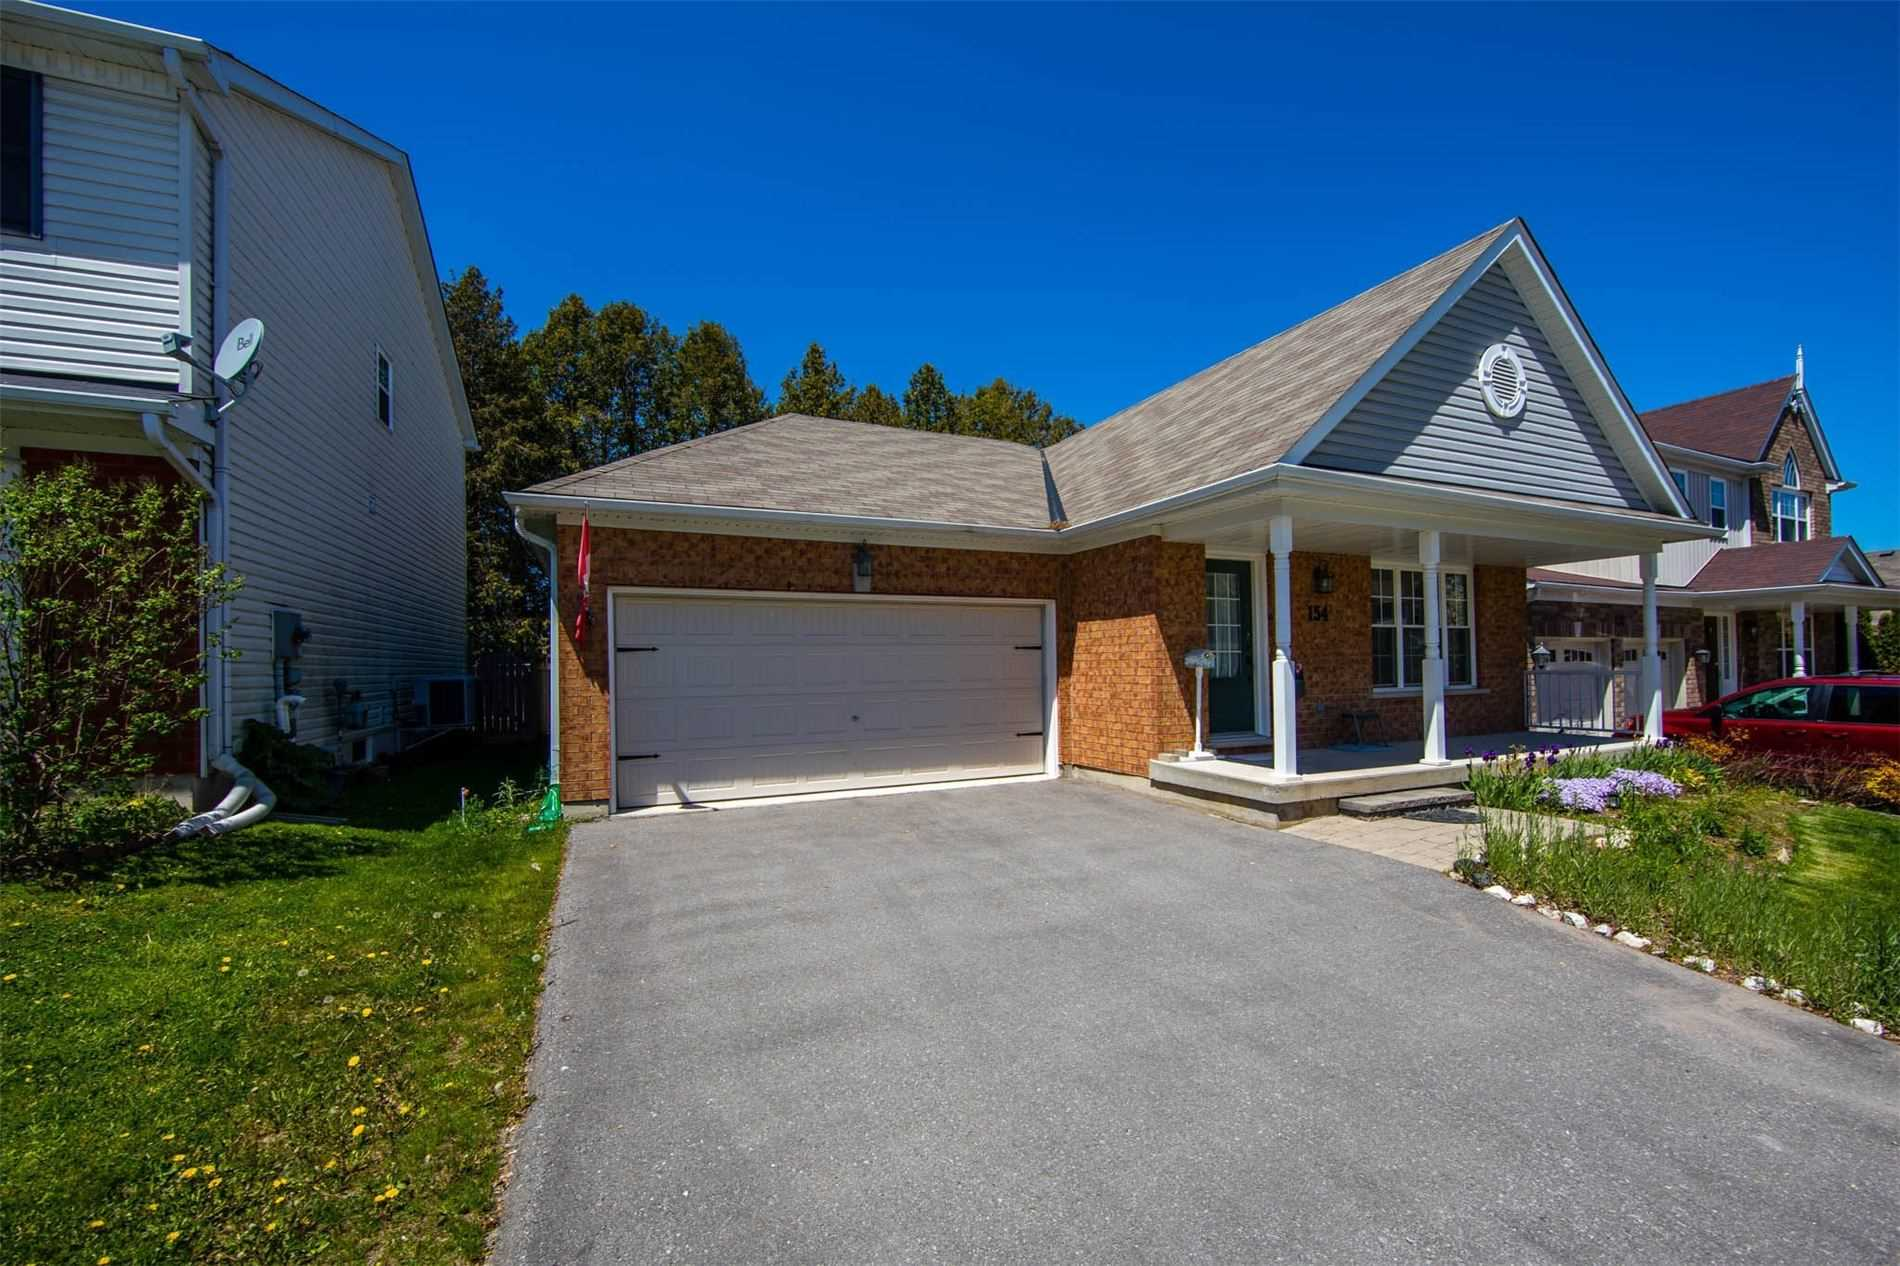 pictures of house for sale MLS: X4771413 located at 154 Bowen Dr, Peterborough K9H0C1